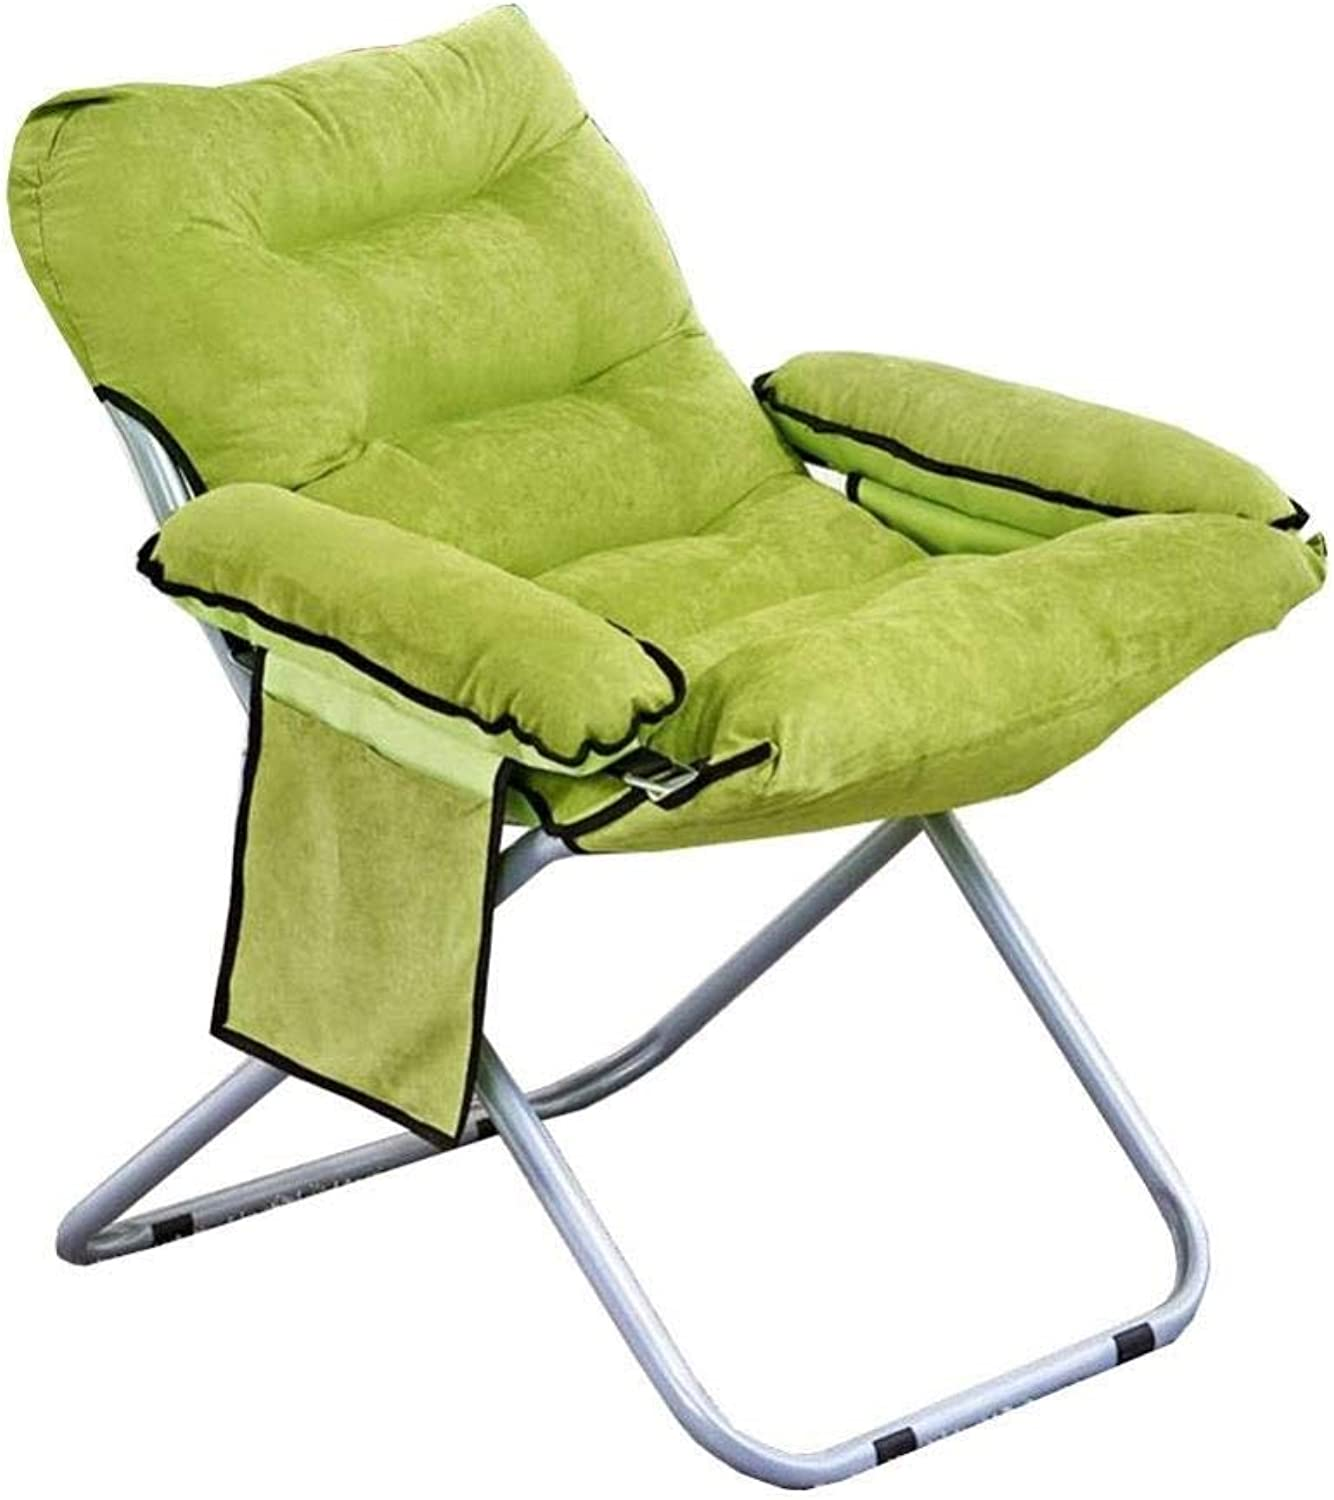 FENGFAN Folding Chair Round Steel Frame Moon Chair Comfortable Portable Lounge Chair 56x76x82cm (color   Green)